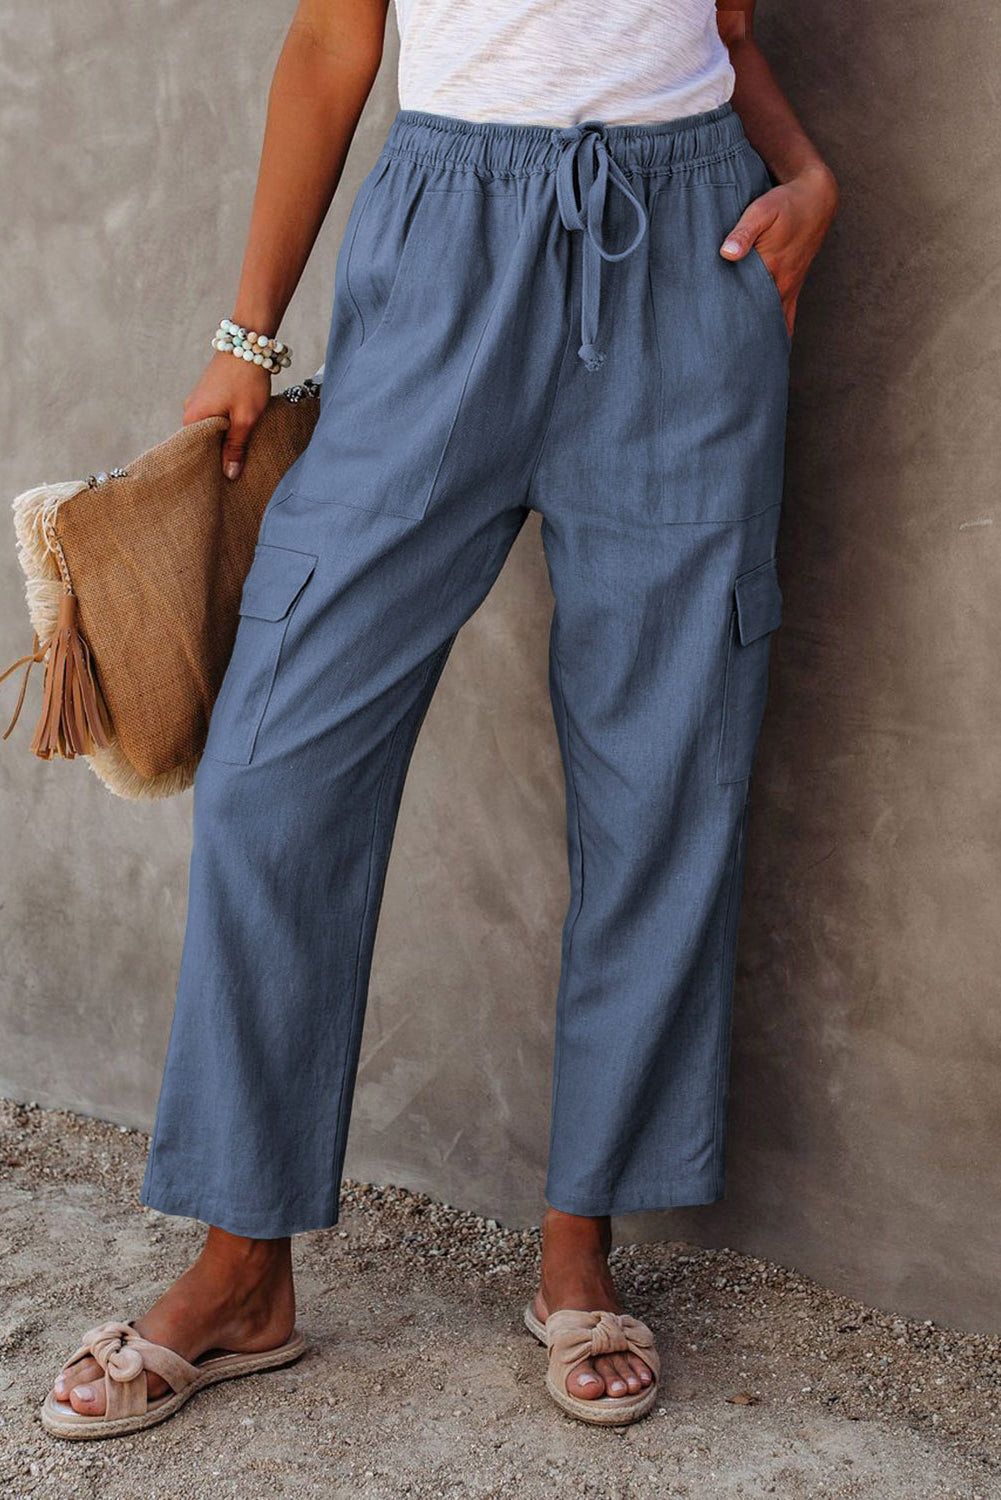 Blue Driven Linen Blend Pocketed Cargo Pants Pants & Culotte Discount Designer Fashion Clothes Shoes Bags Women Men Kids Children Black Owned Business